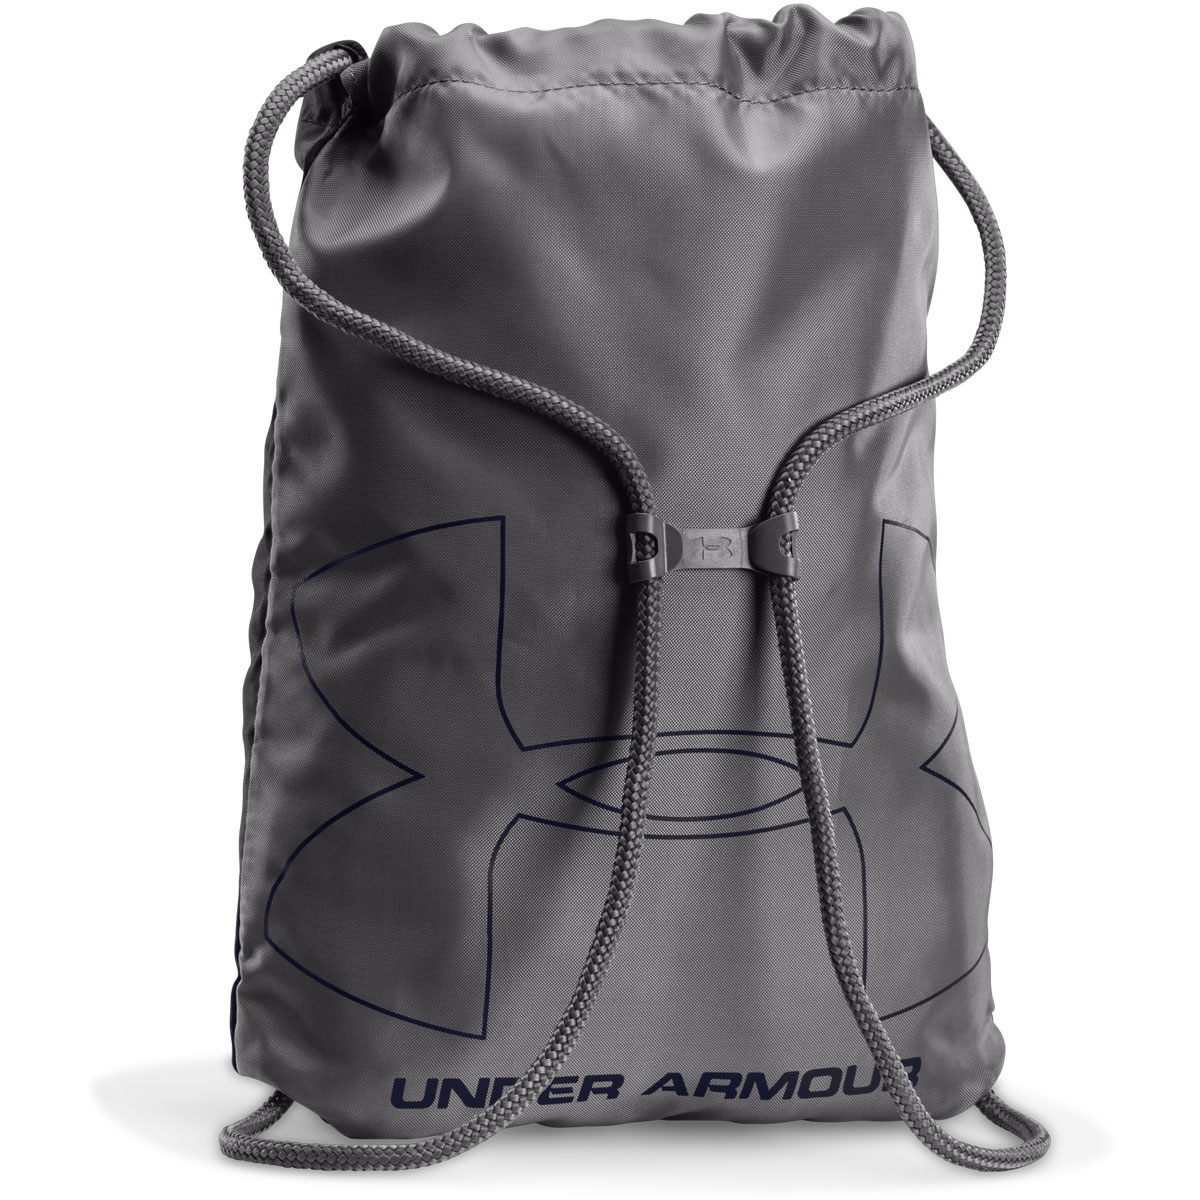 96378058d029 under armour black backpack cheap   OFF54% The Largest Catalog Discounts